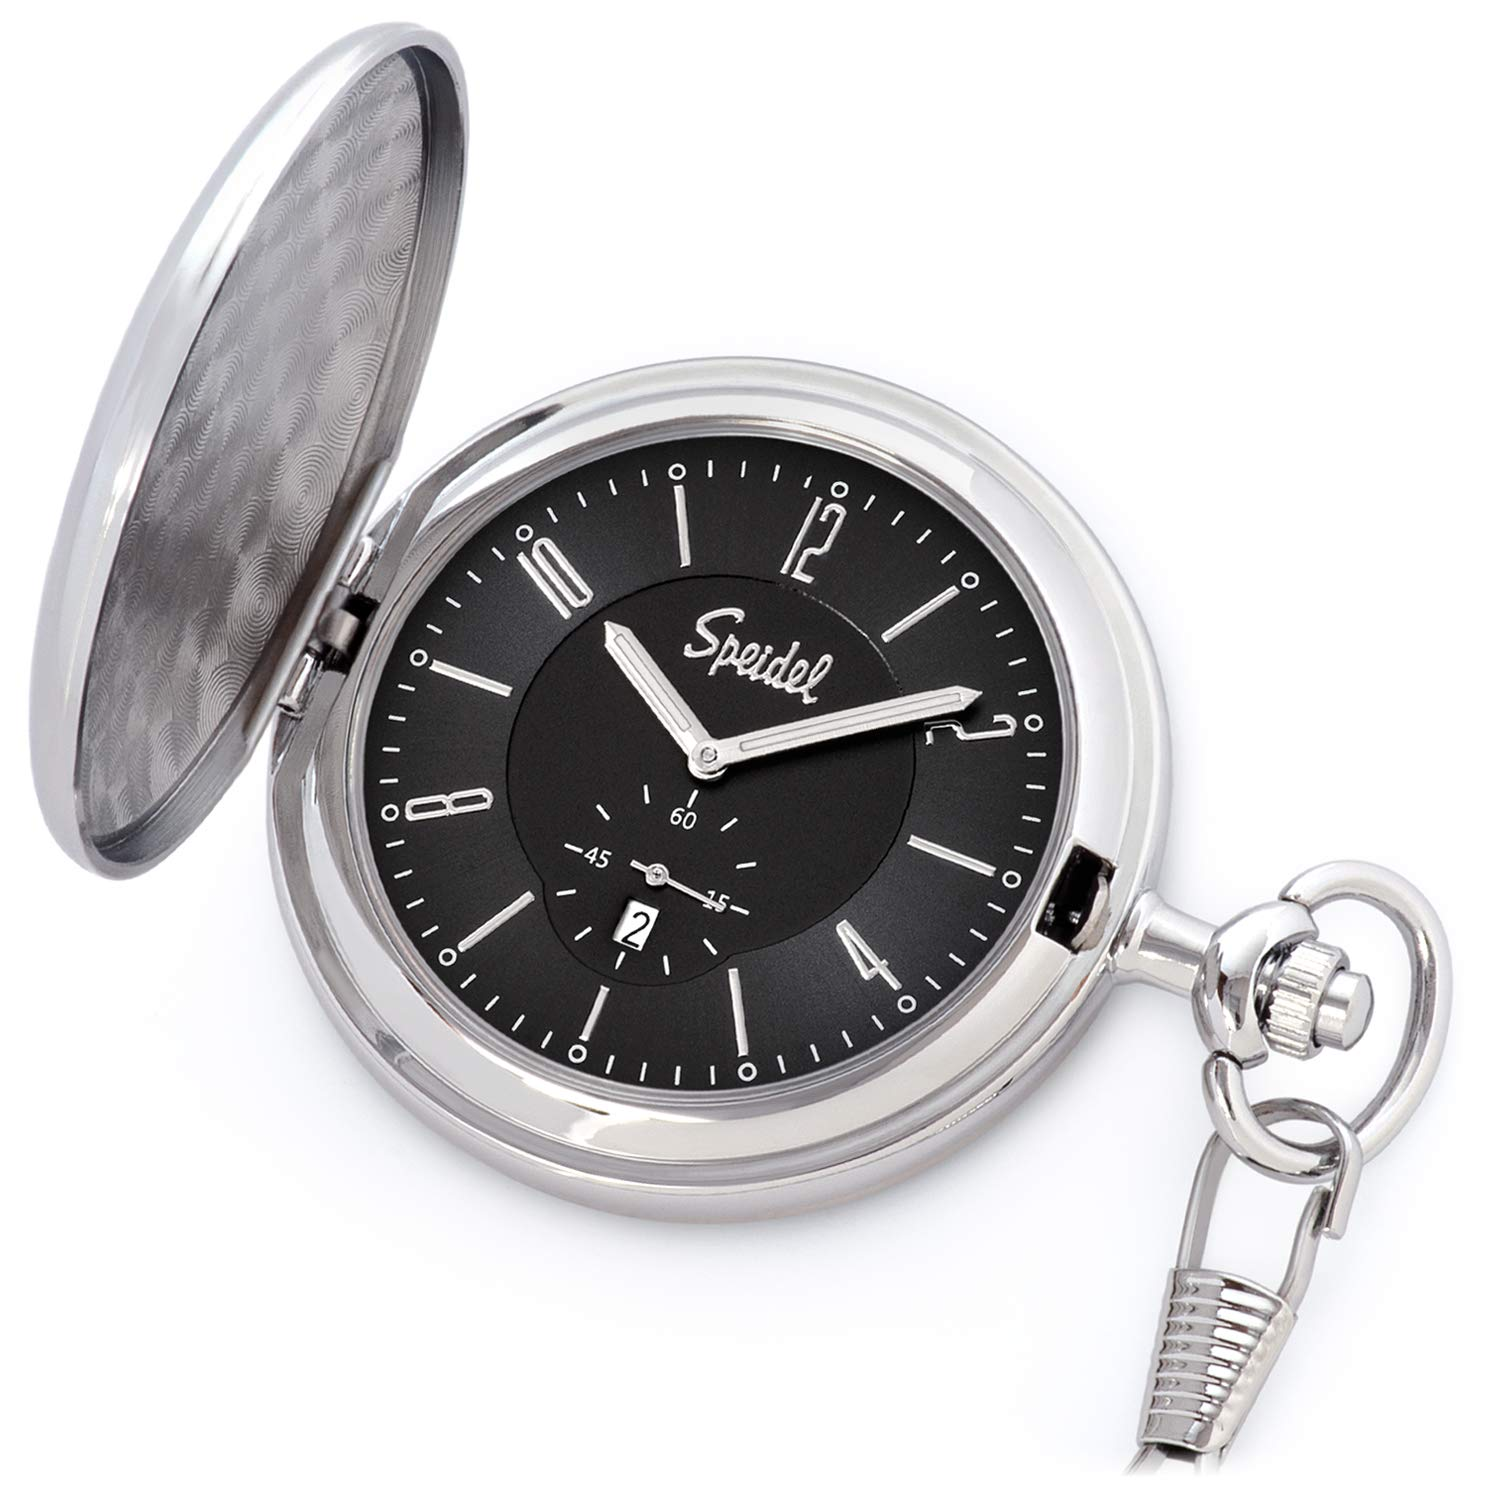 Speidel Classic Brushed Satin Silver-Tone Engravable Pocket Watch with 14'' Chain, Black Dial, Date Window, Seconds Sub-Dial and Luminous Hands